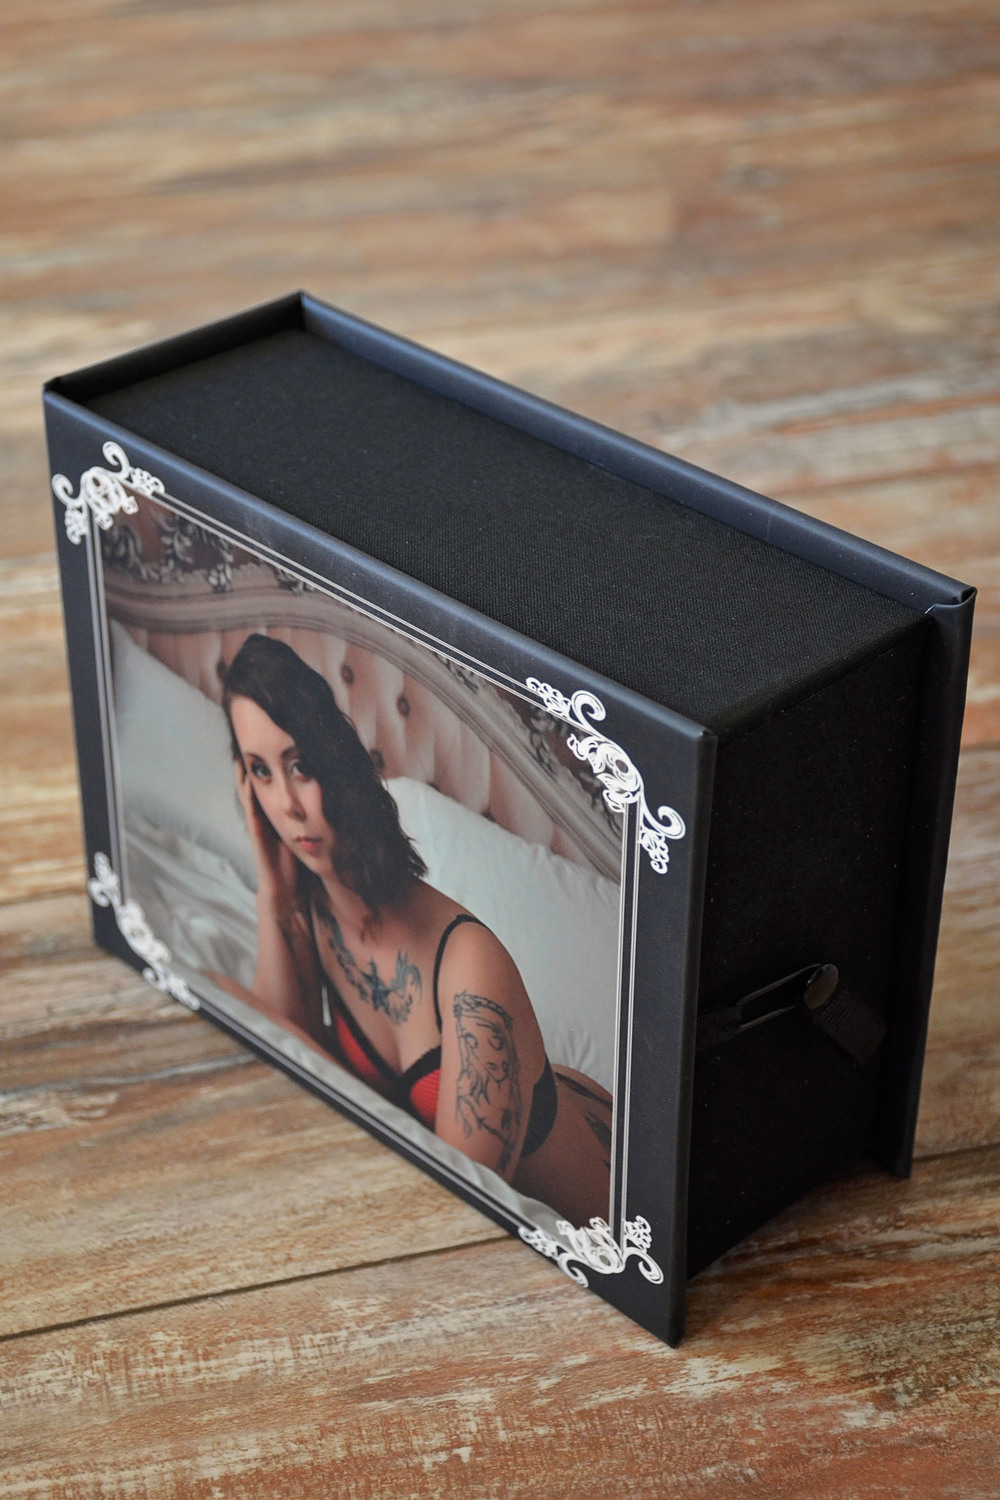 Boudoir image box front and side closure